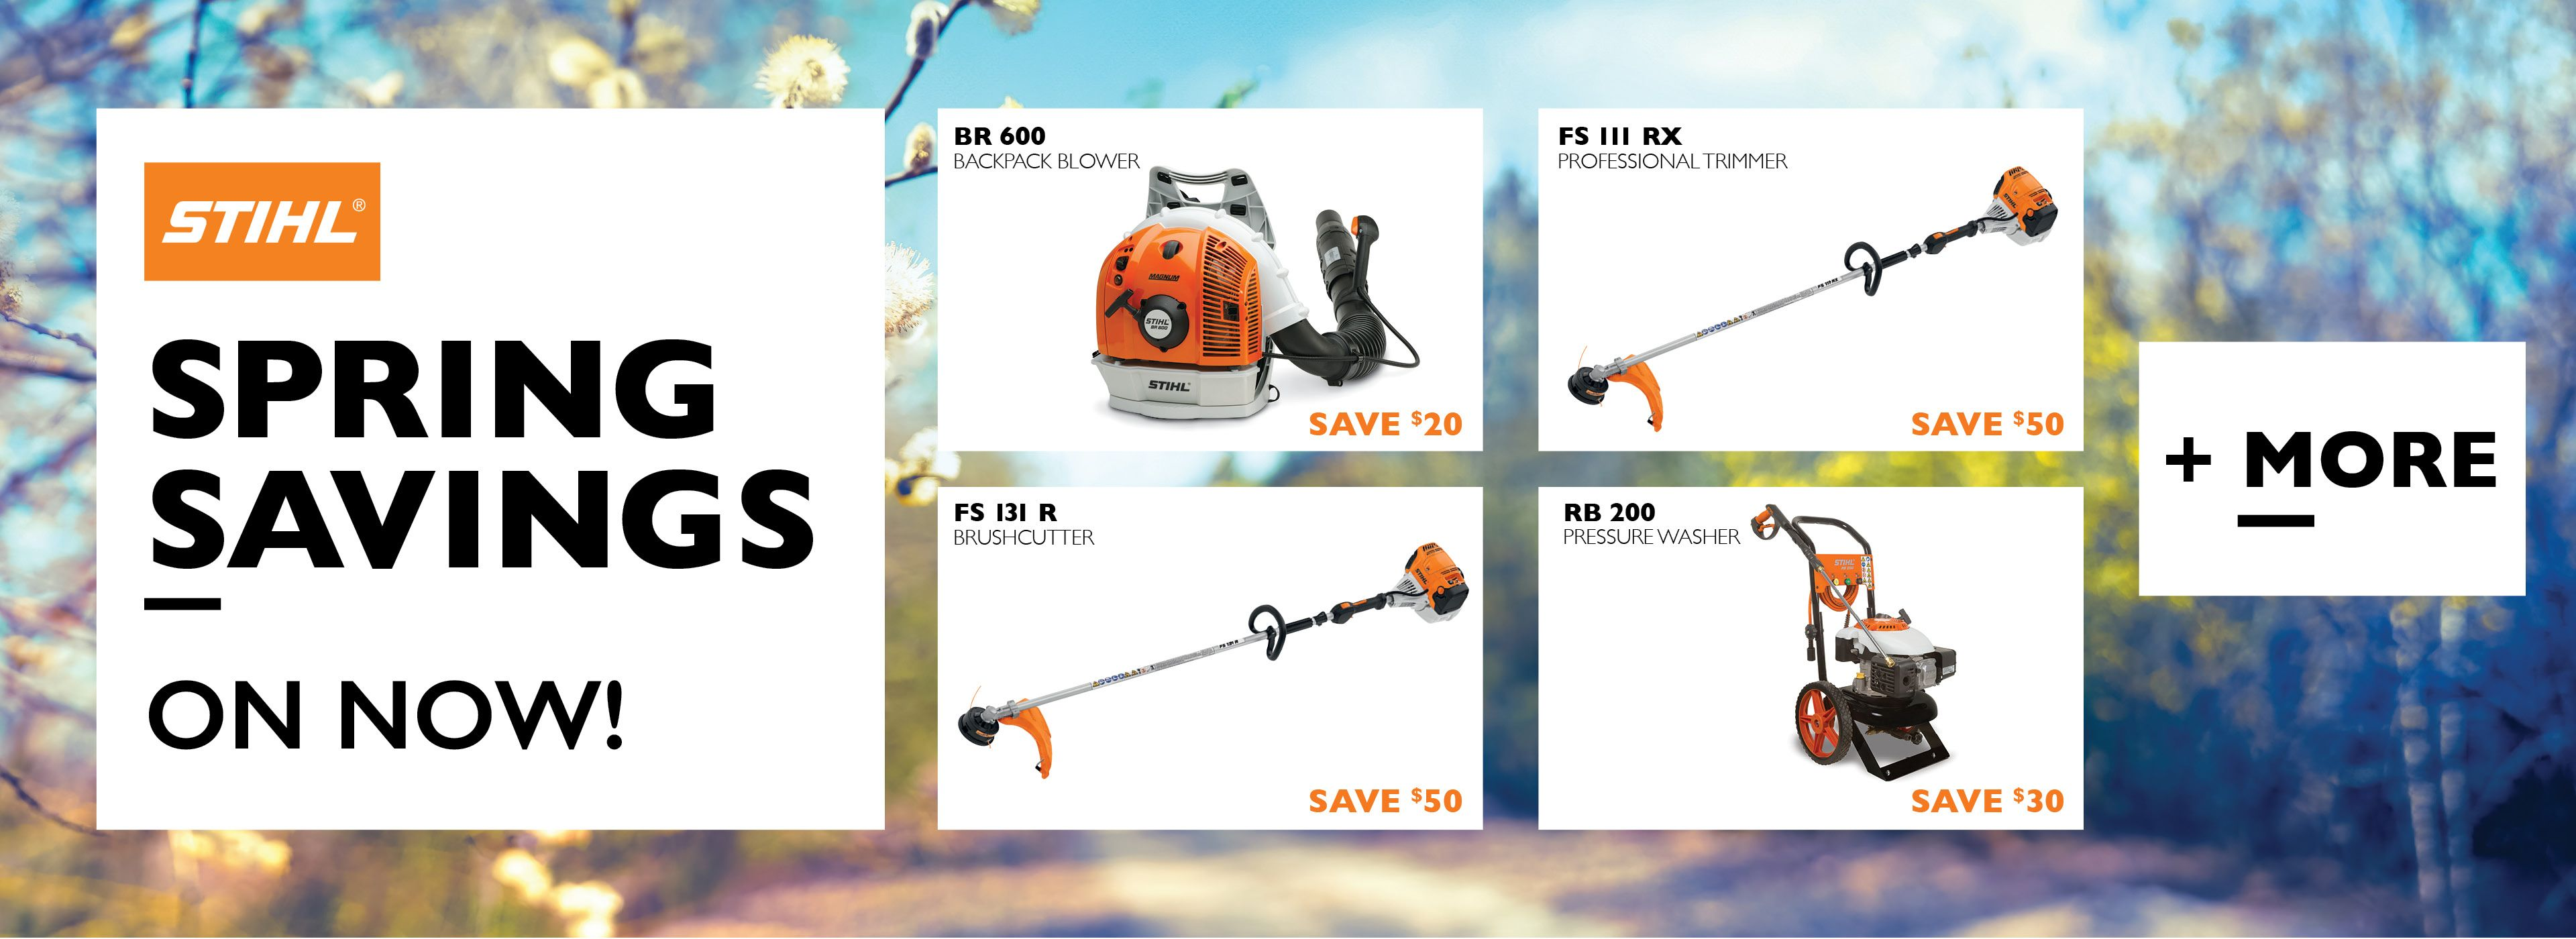 2021 Stihl Spring Savings